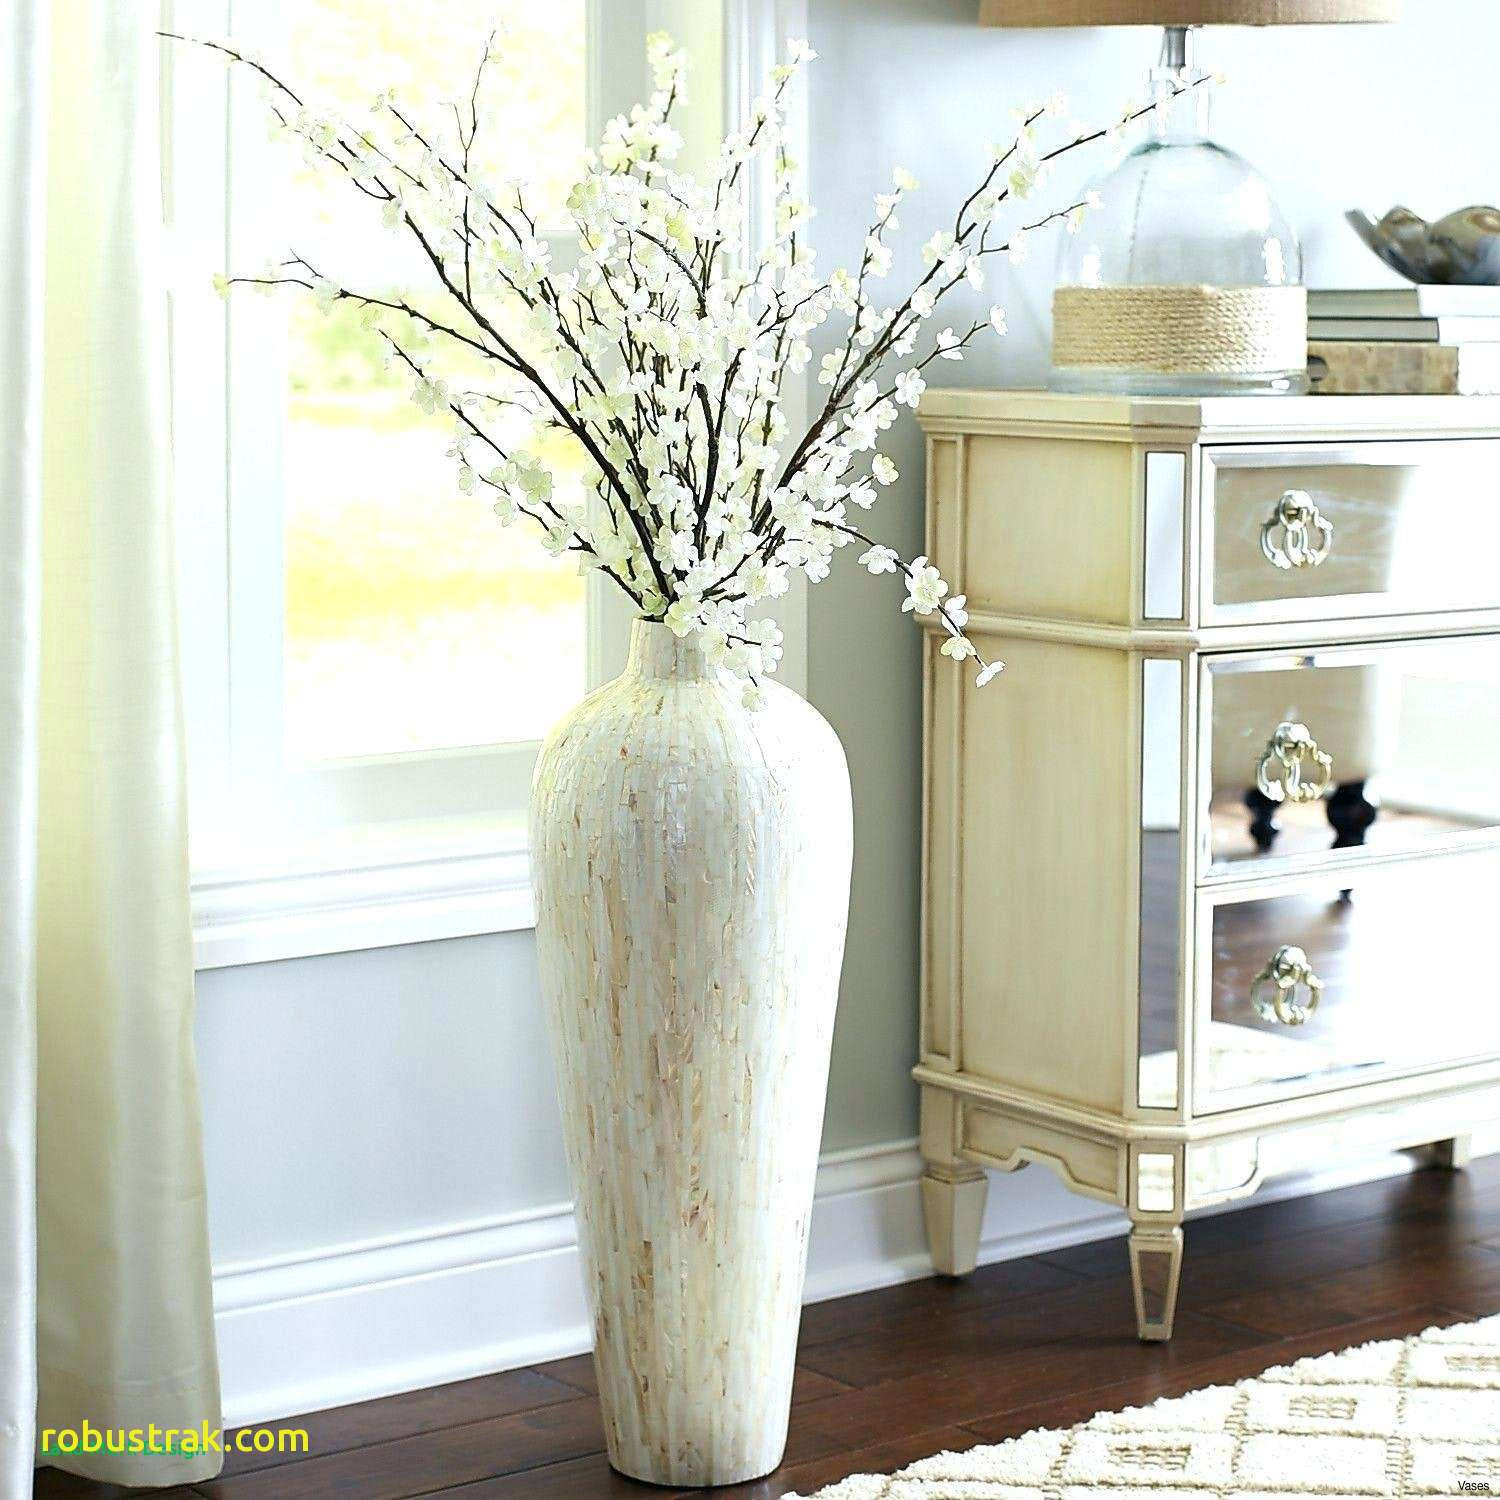 Floor Vase with Sticks Of 20 Elegant Large Floor Vase Decoration Ideas Bogekompresorturkiye Com Regarding Tall Floor Vaseh Vases Extra Large Vase Vasei 0d Tall Vase with Branches